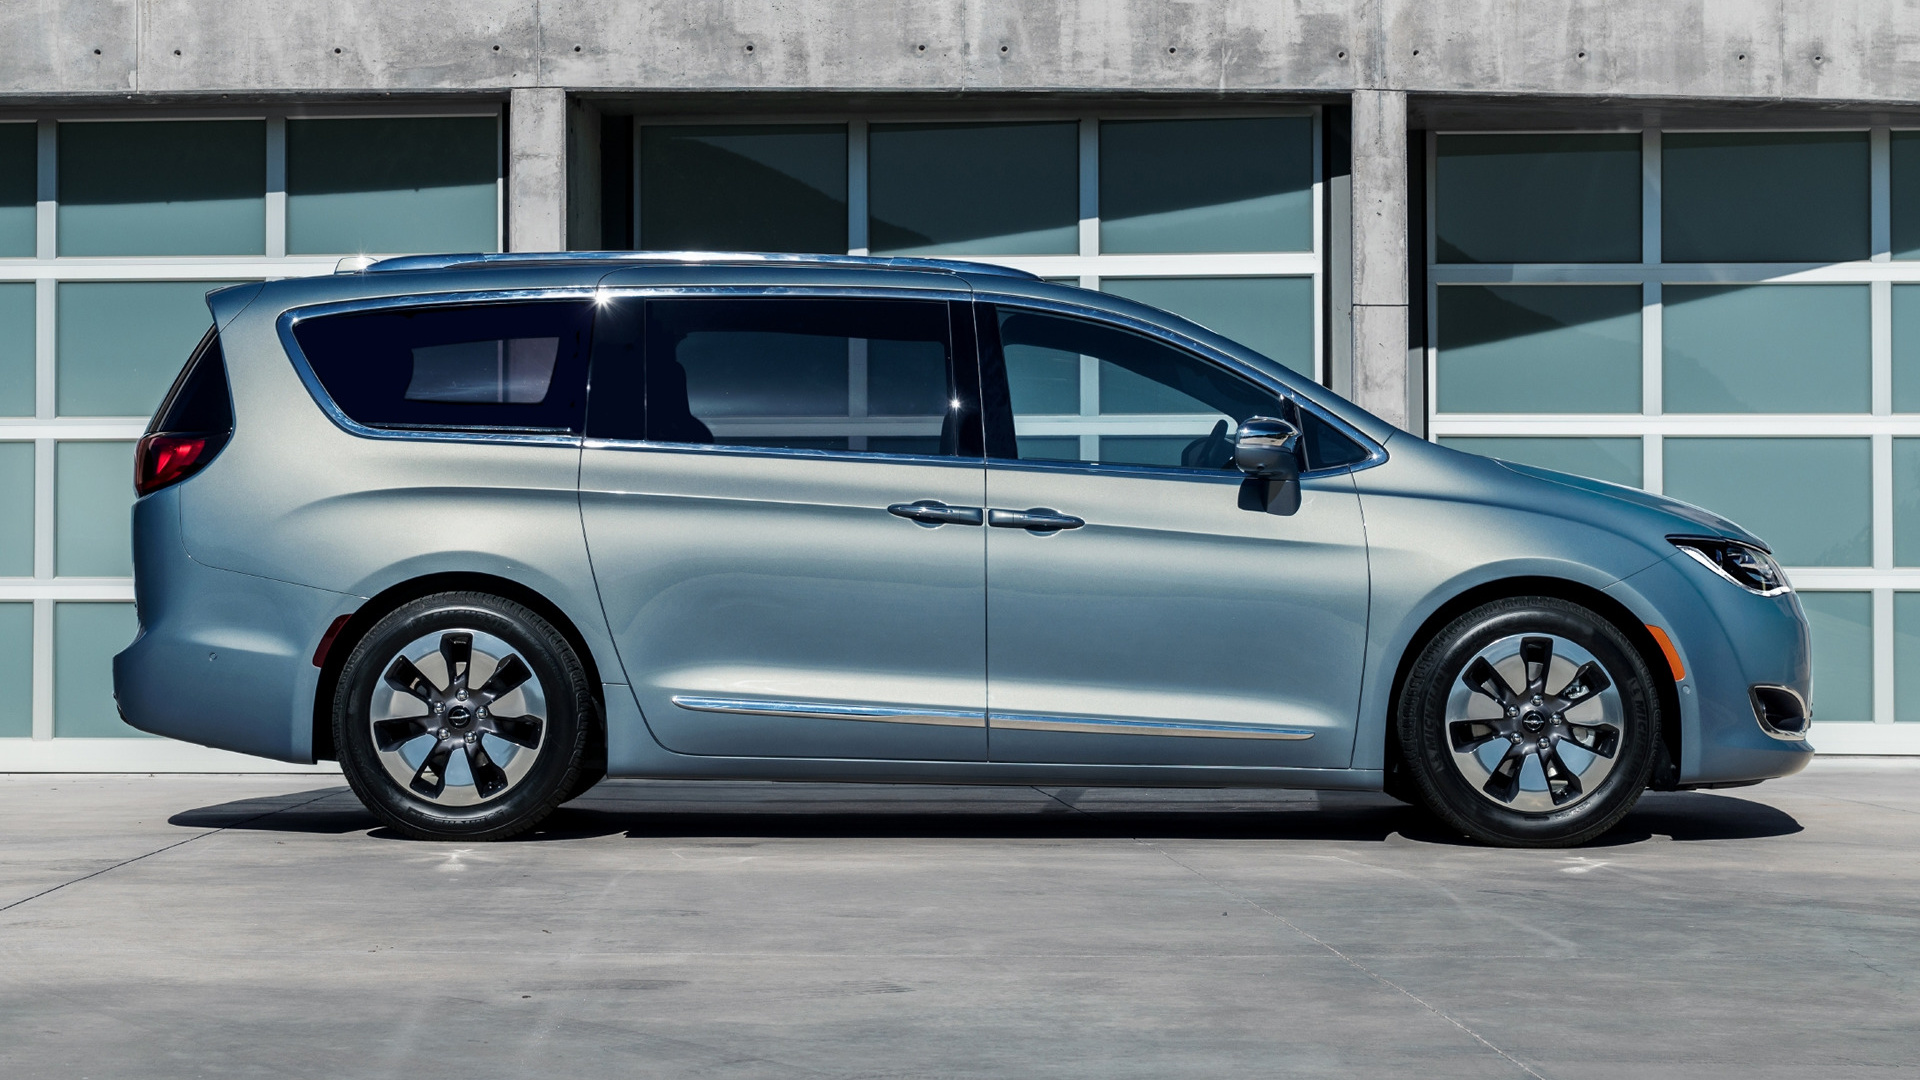 chrysler pacifica hybrid 2017 wallpapers and hd images car pixel. Black Bedroom Furniture Sets. Home Design Ideas